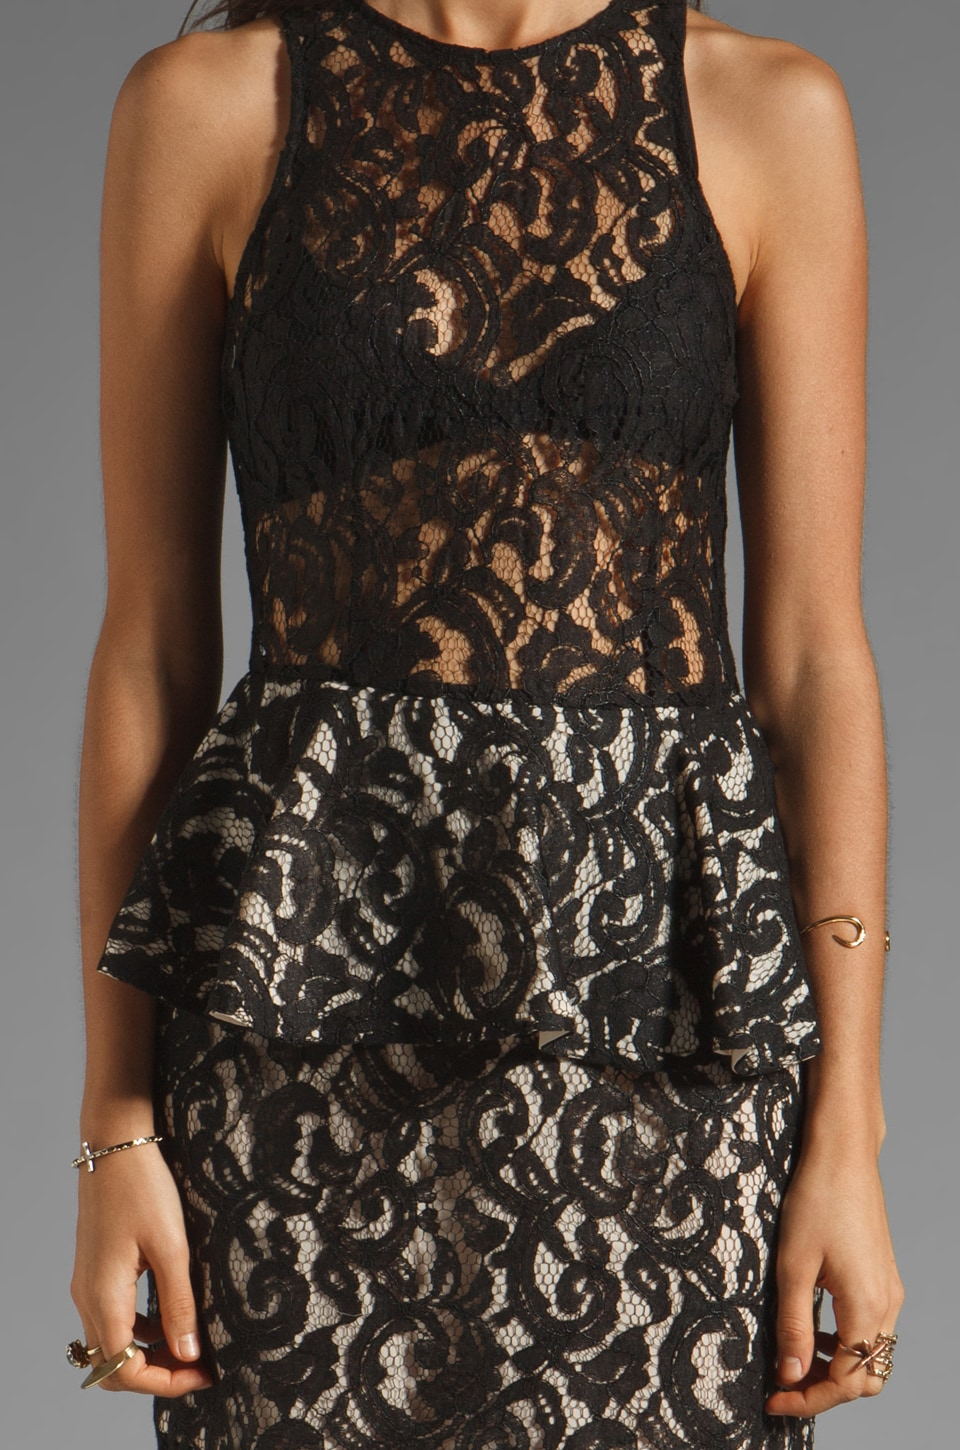 Style Stalker Panthers Lace Dress in Black